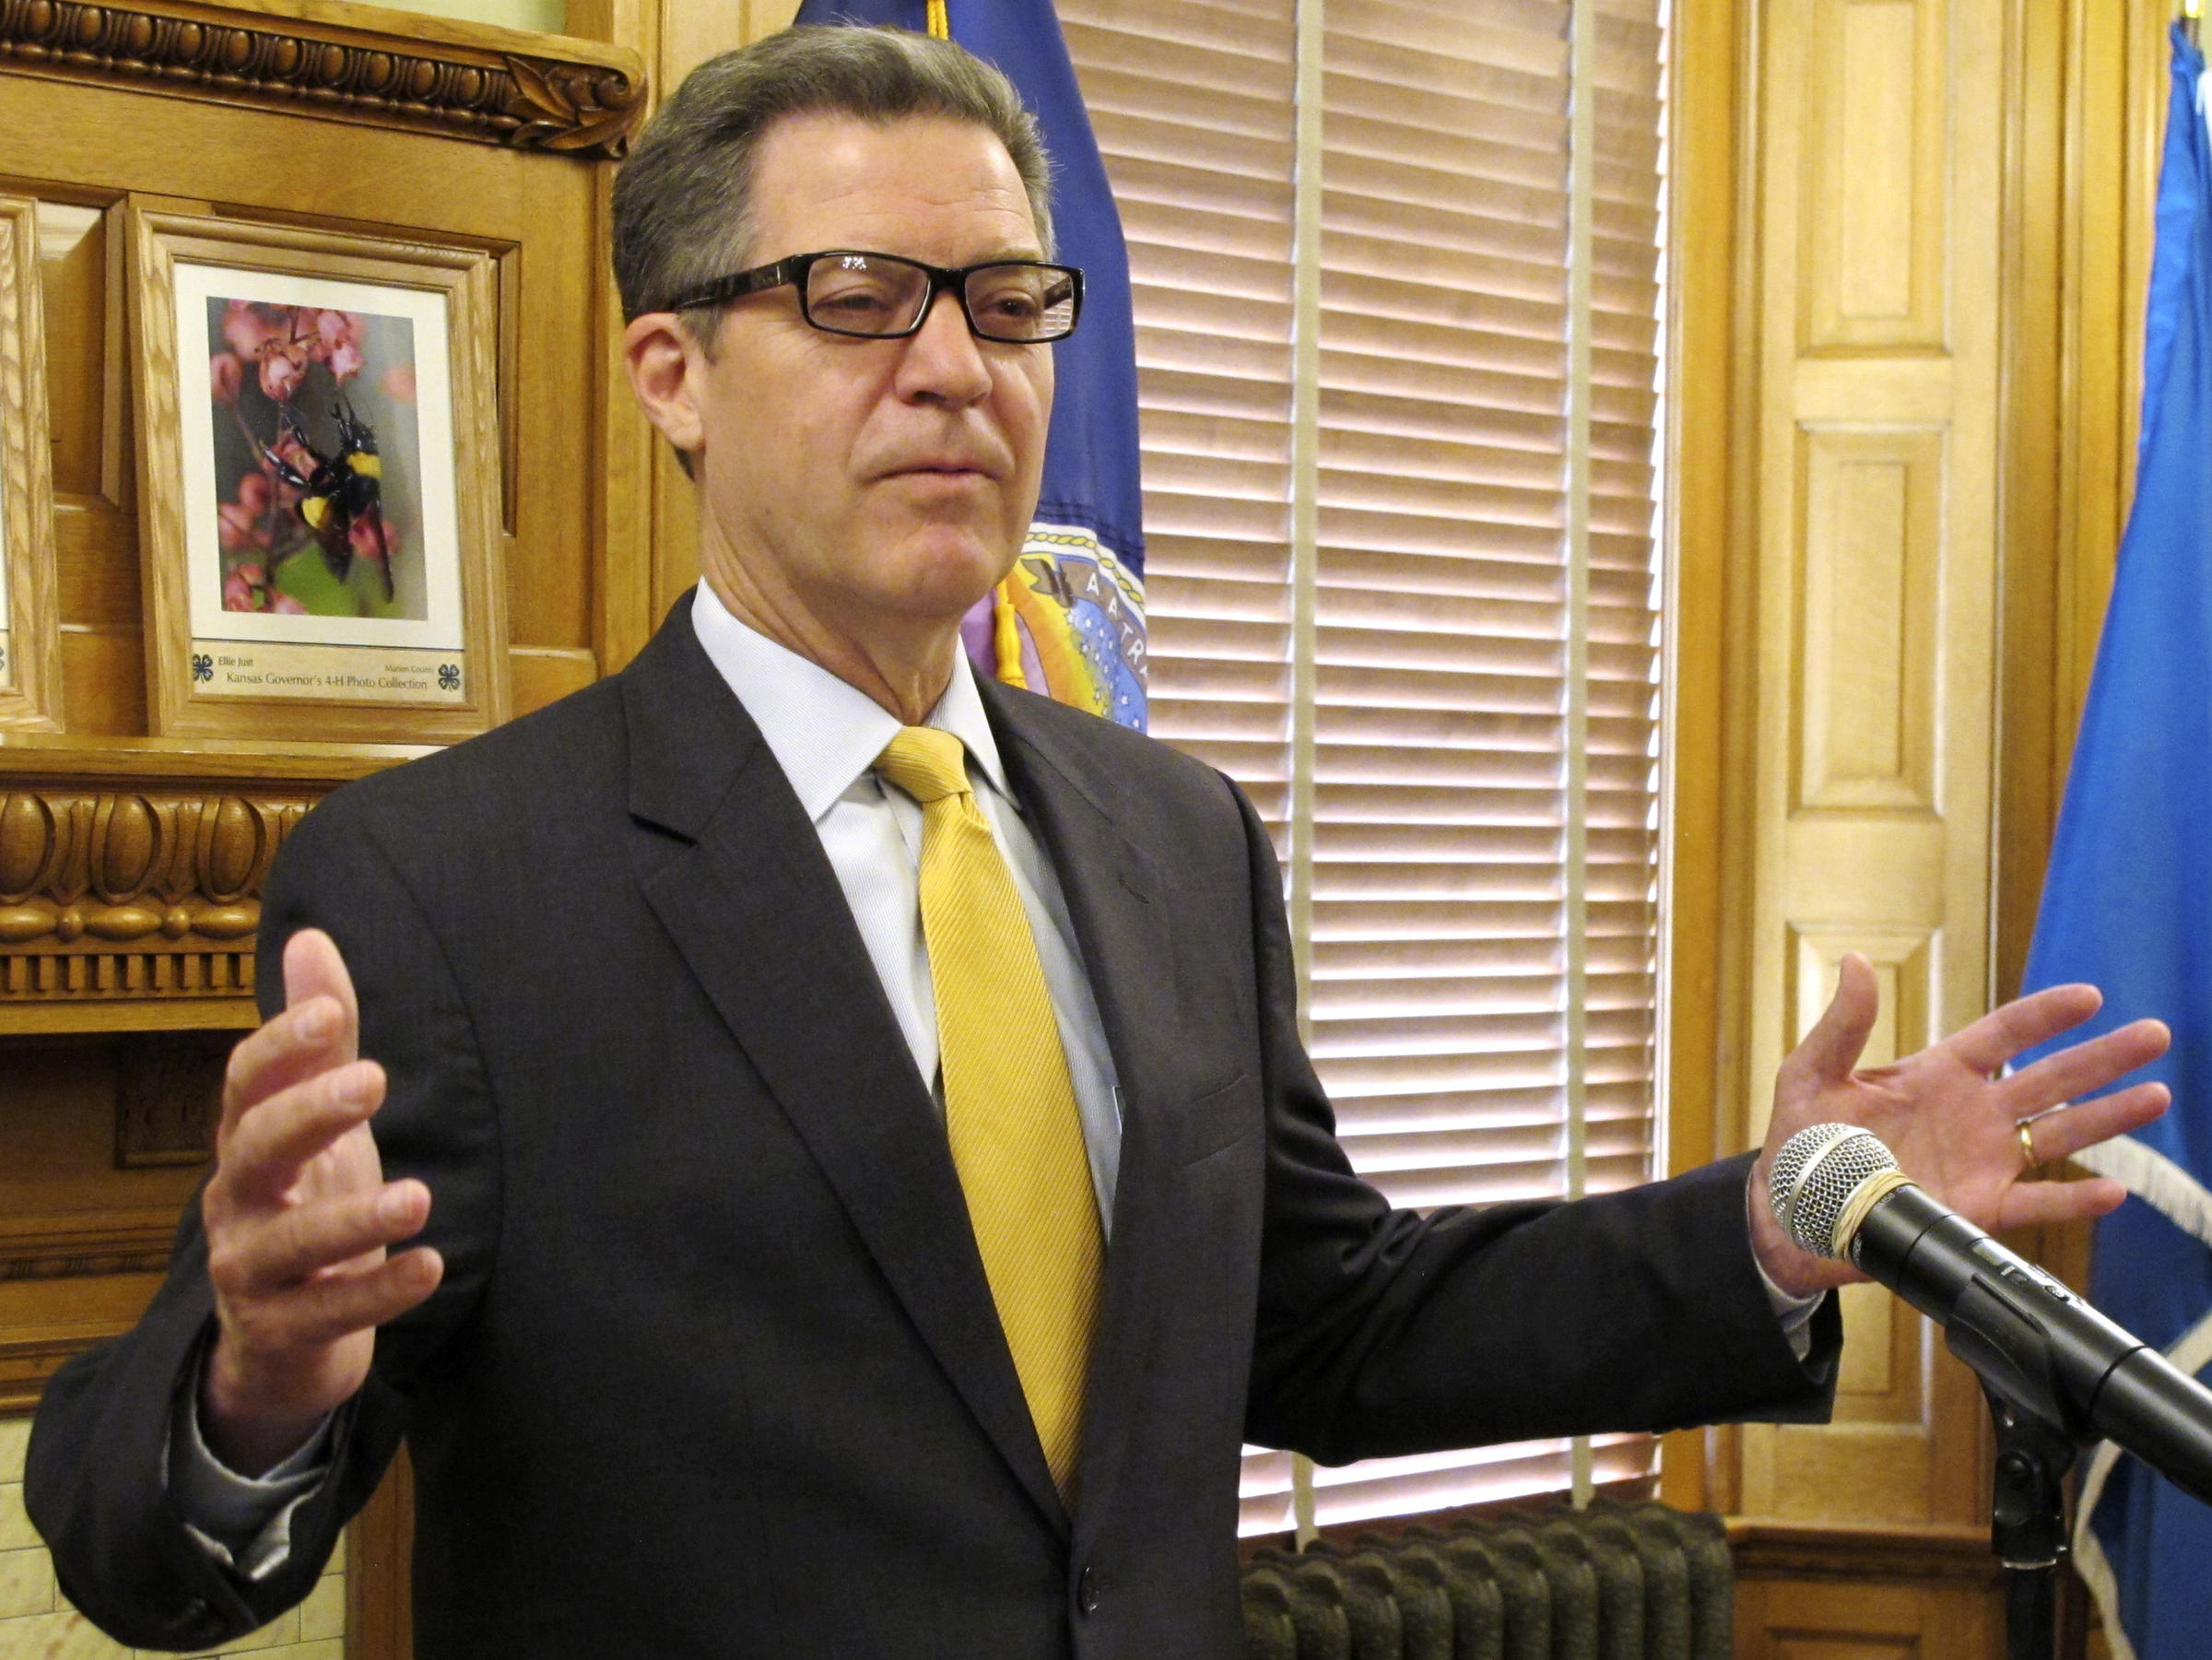 Kansas Gov. Brownback, a Staunch Conservative, Prepares to Step Down